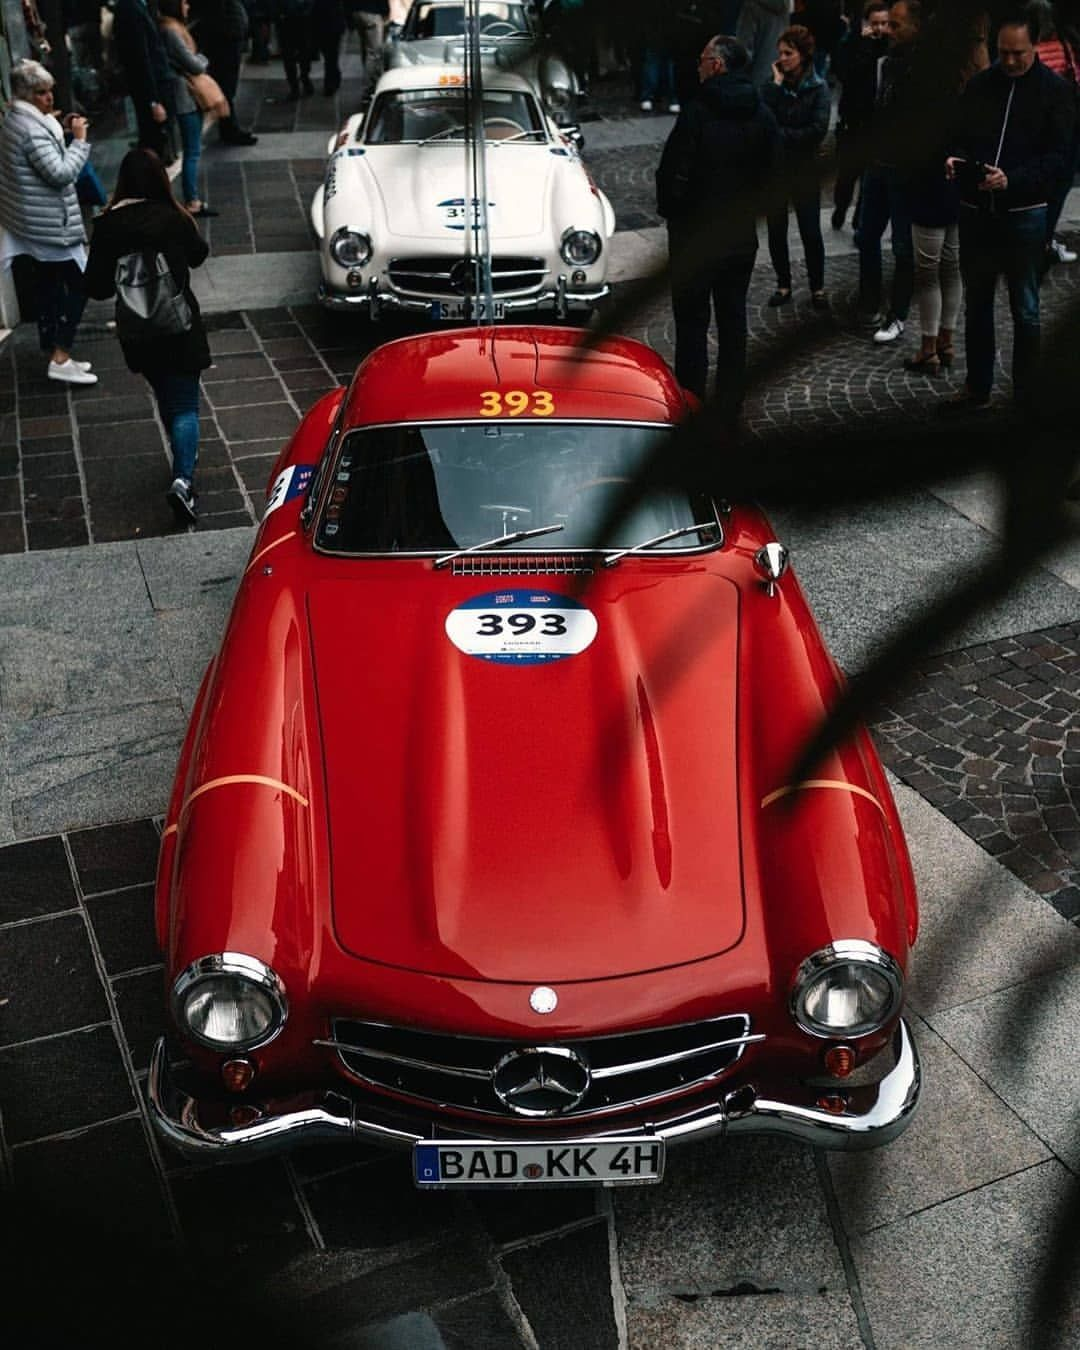 Pin By Theirishduke On Mercedes Benz With Images: Mercedes Benz 300SL CC: @mercedesbenzmuseum #300SL #280se